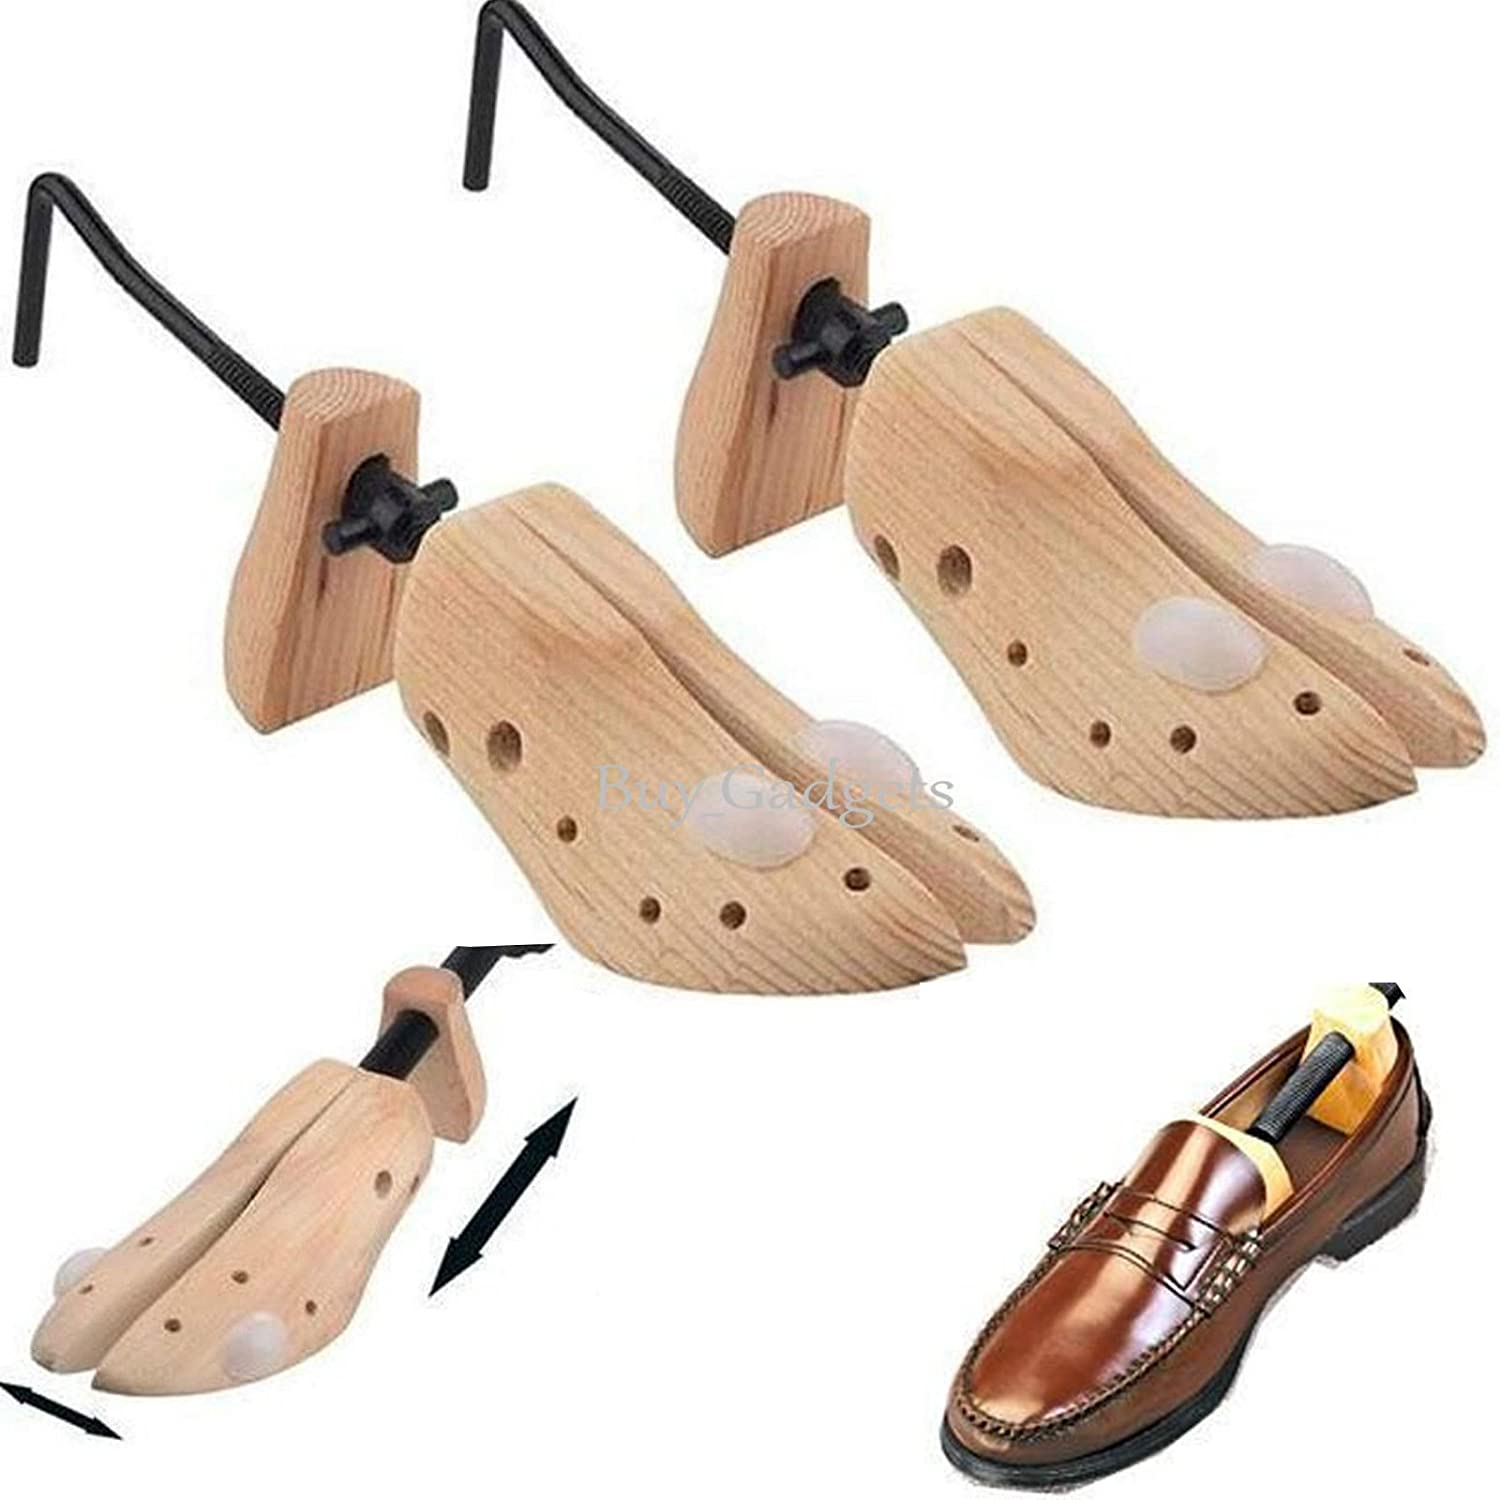 2 x MENS GENTS SHOE STRETCHERS TREE WOODEN SHAPER BUNION CORN BLISTER SIZE 6-12 unknown